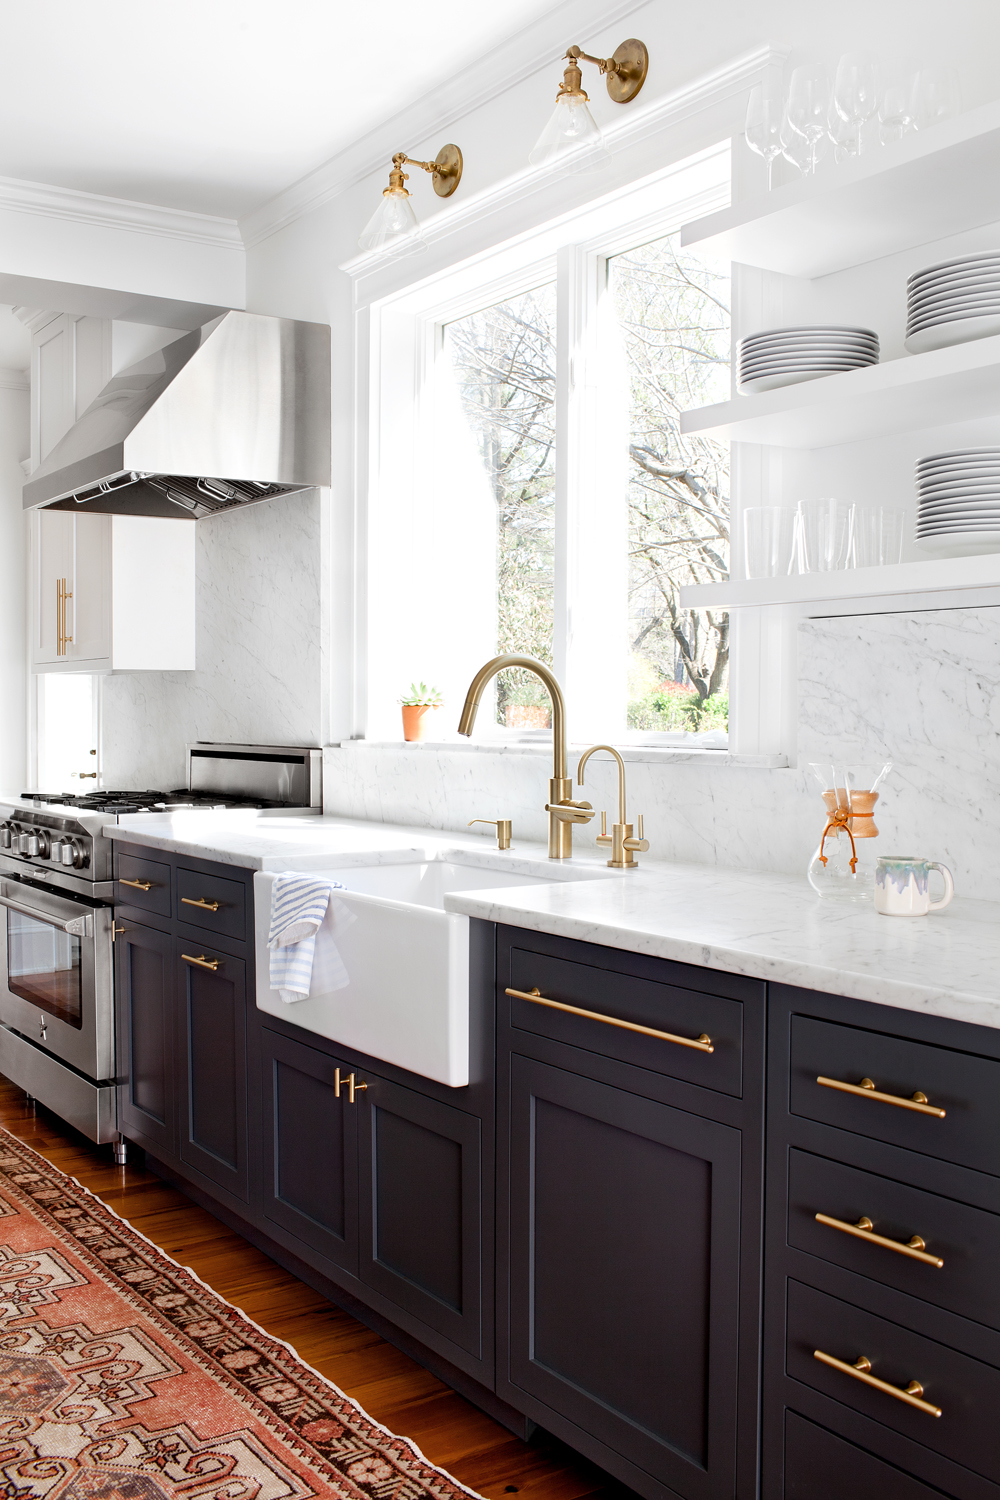 Our 6 Favorite Kitchen Trends - Gilson Home Group